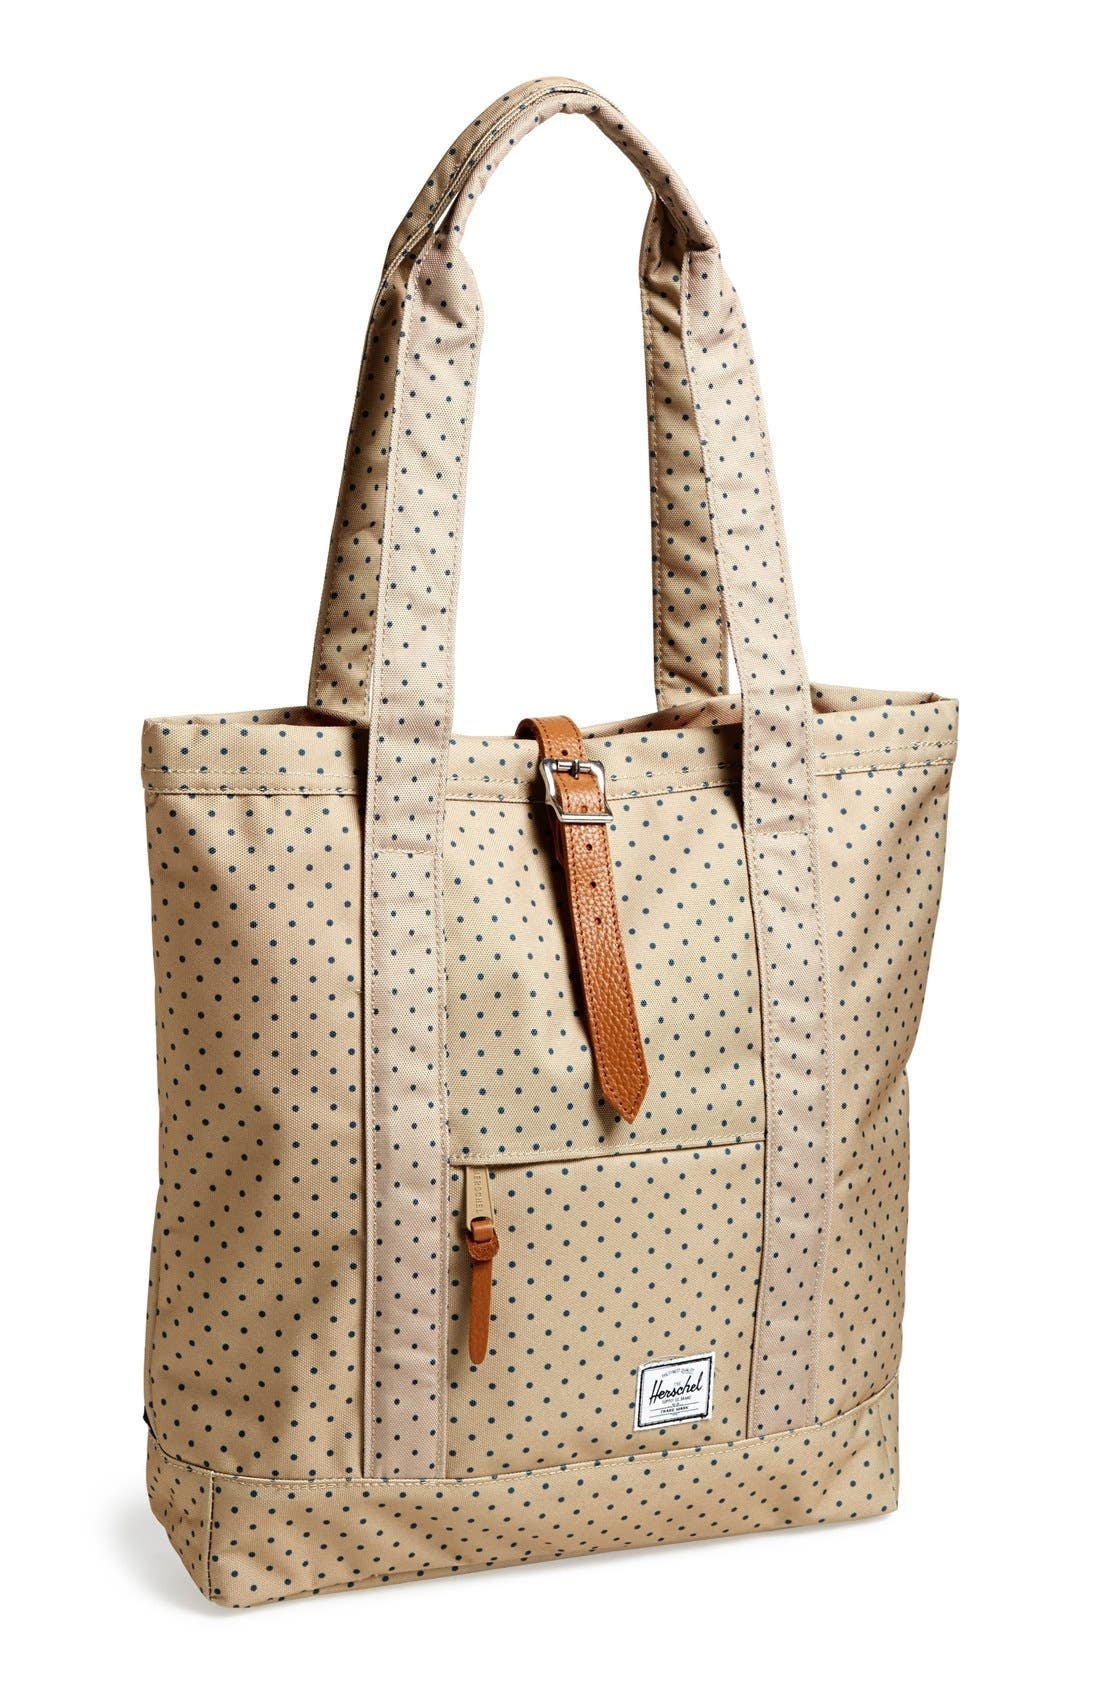 Alternate Image 1 Selected - Herschel Supply Co. 'Market' Tote Bag